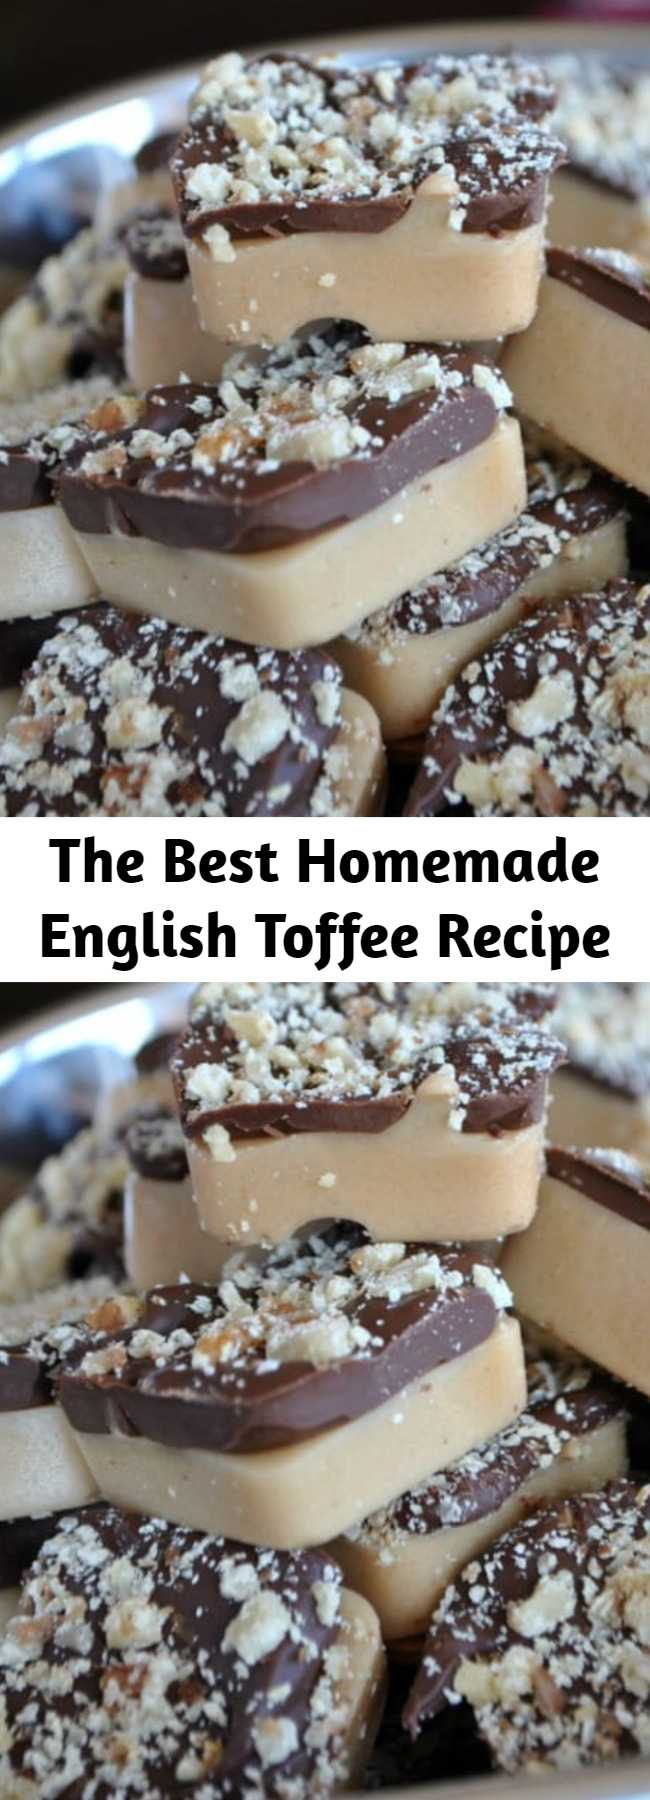 The Best Homemade English Toffee Recipe - English Toffee is a classic holiday candy: buttery candy poured over almonds, topped with milk chocolate and walnuts. Make it in a brownie bite pan to get the cutest toffee bites – perfect for gifting!